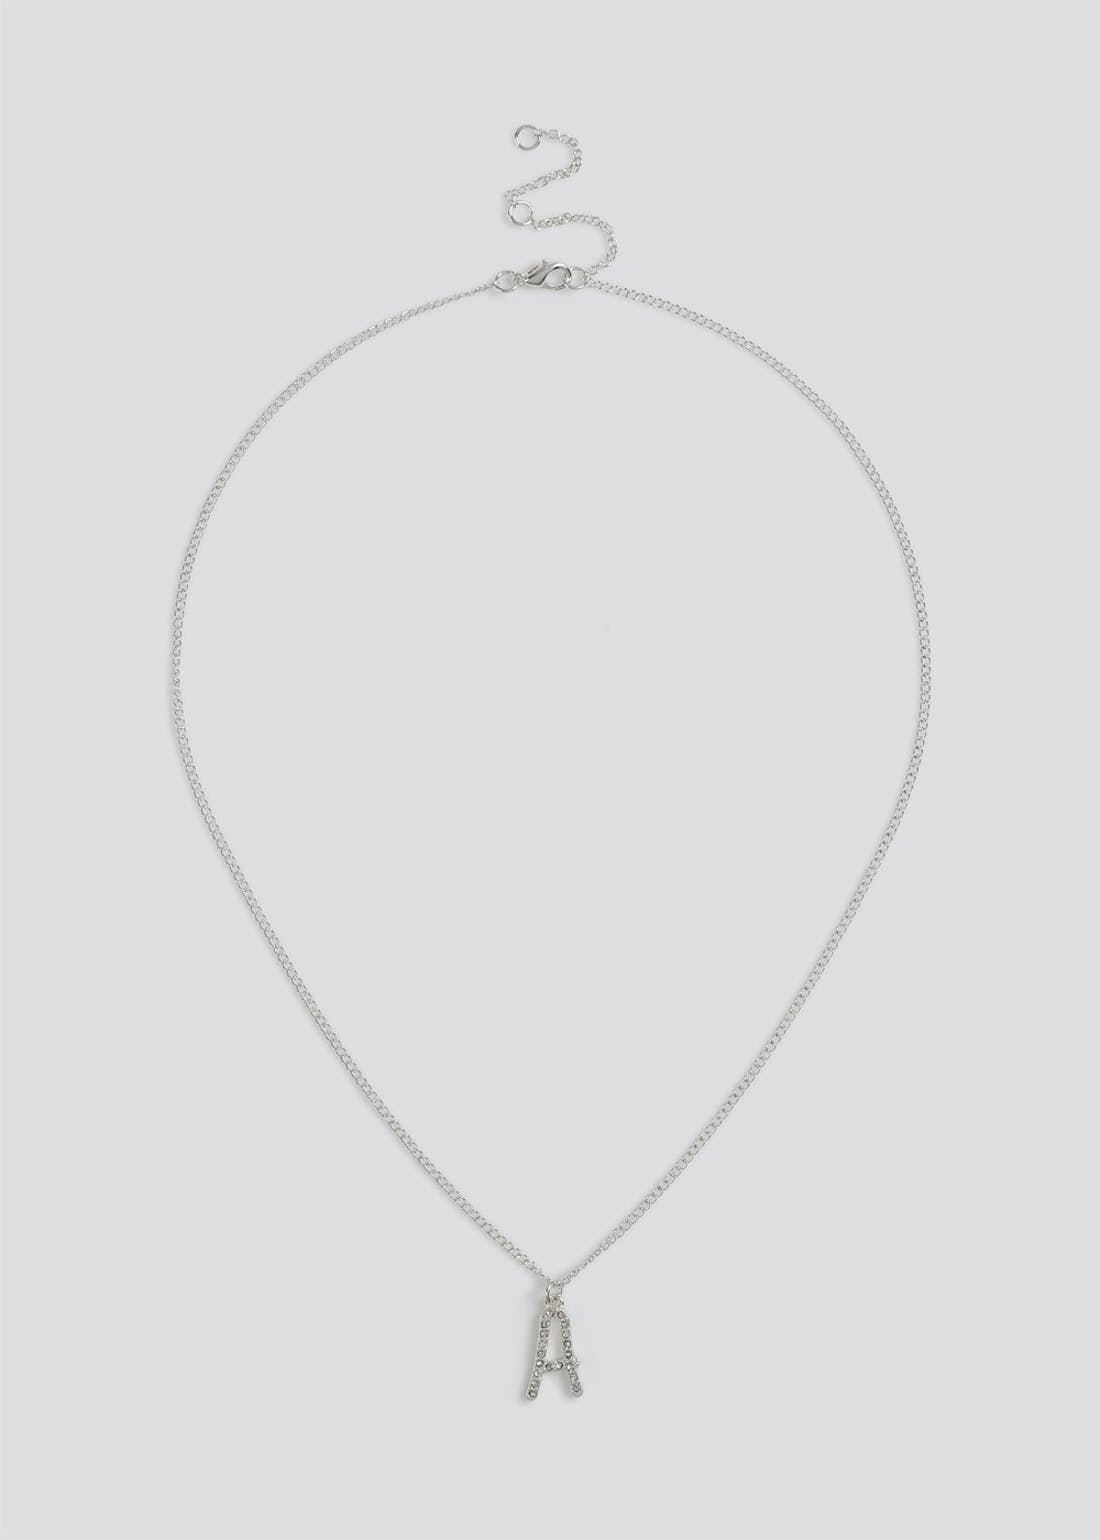 Girls Silver 'A' Initial Necklace